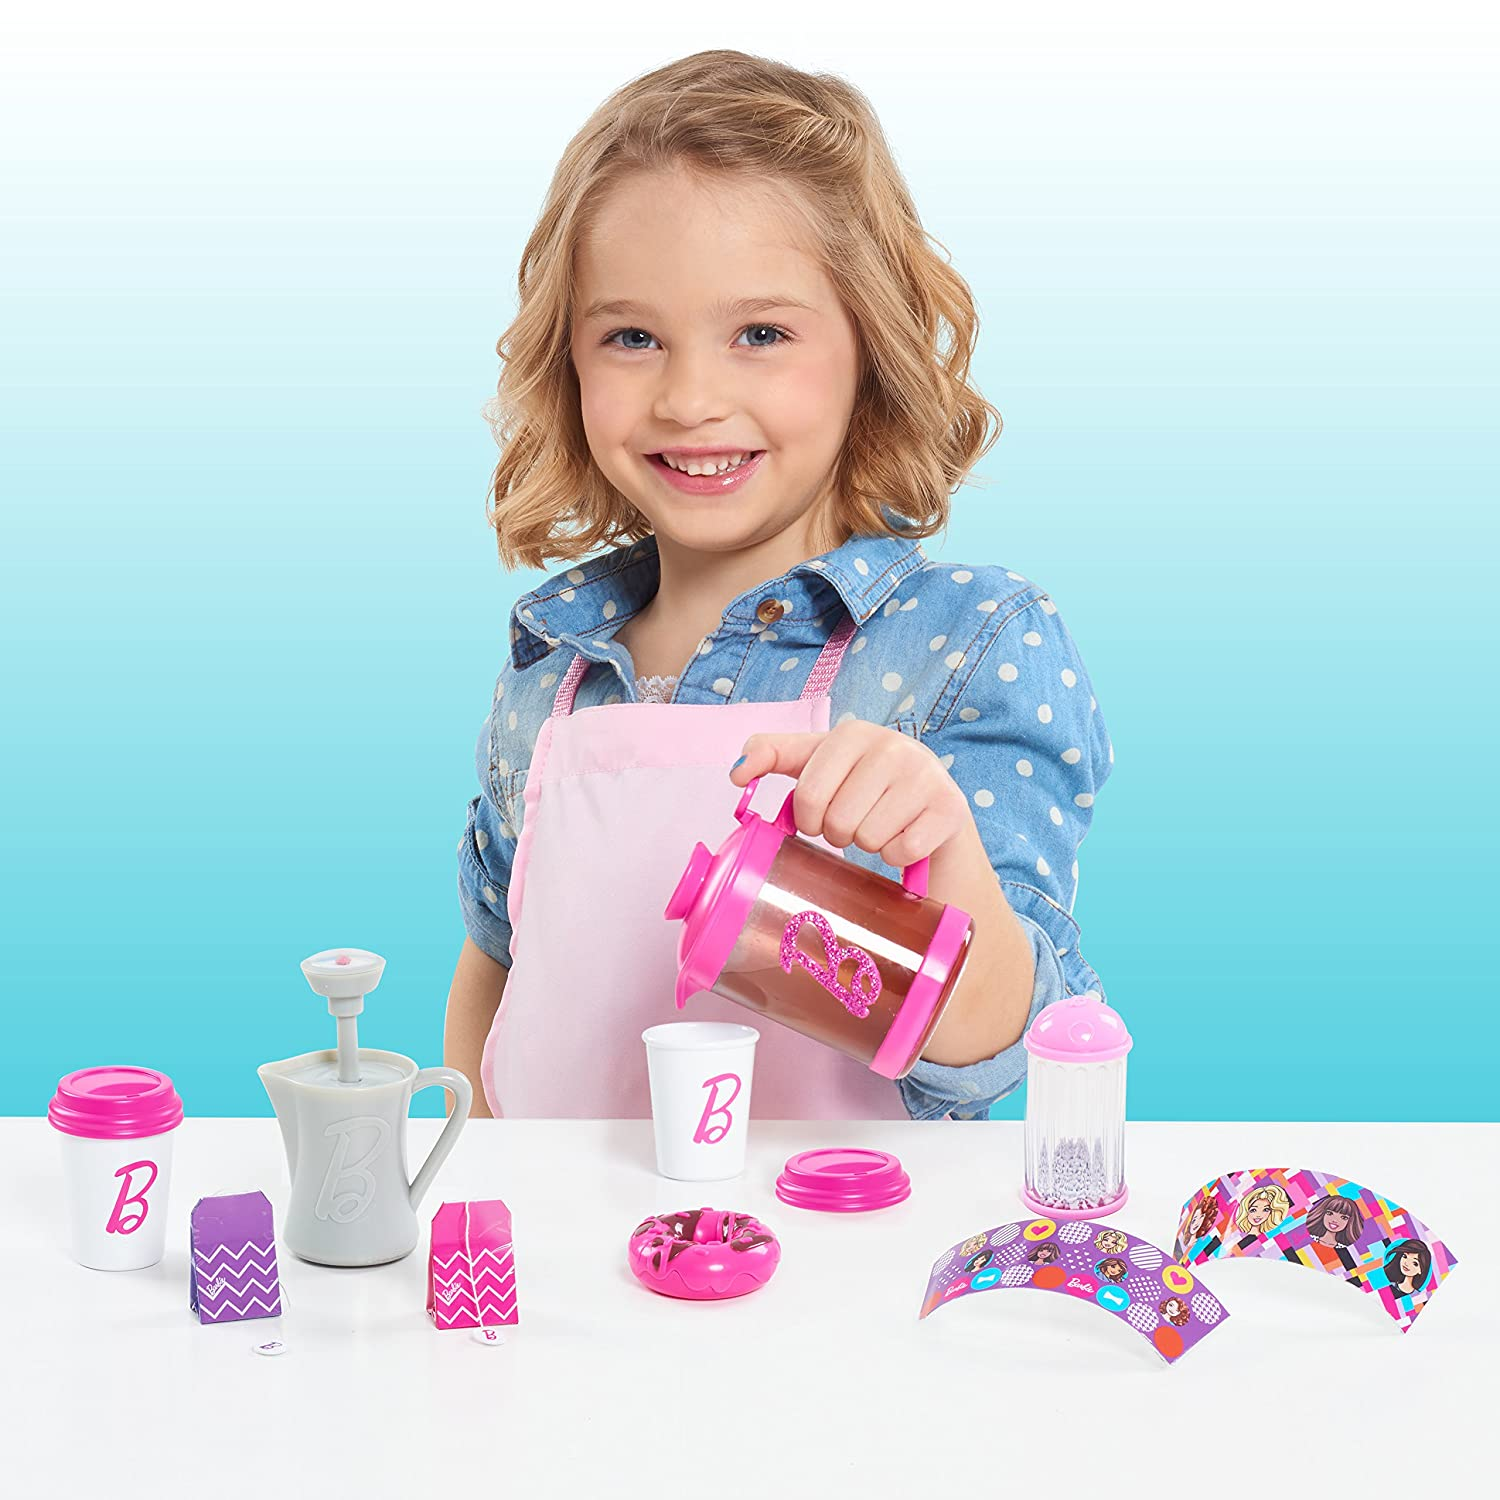 Amazon.com: Barbie Just Play 62546 Barista Set: Toys & Games